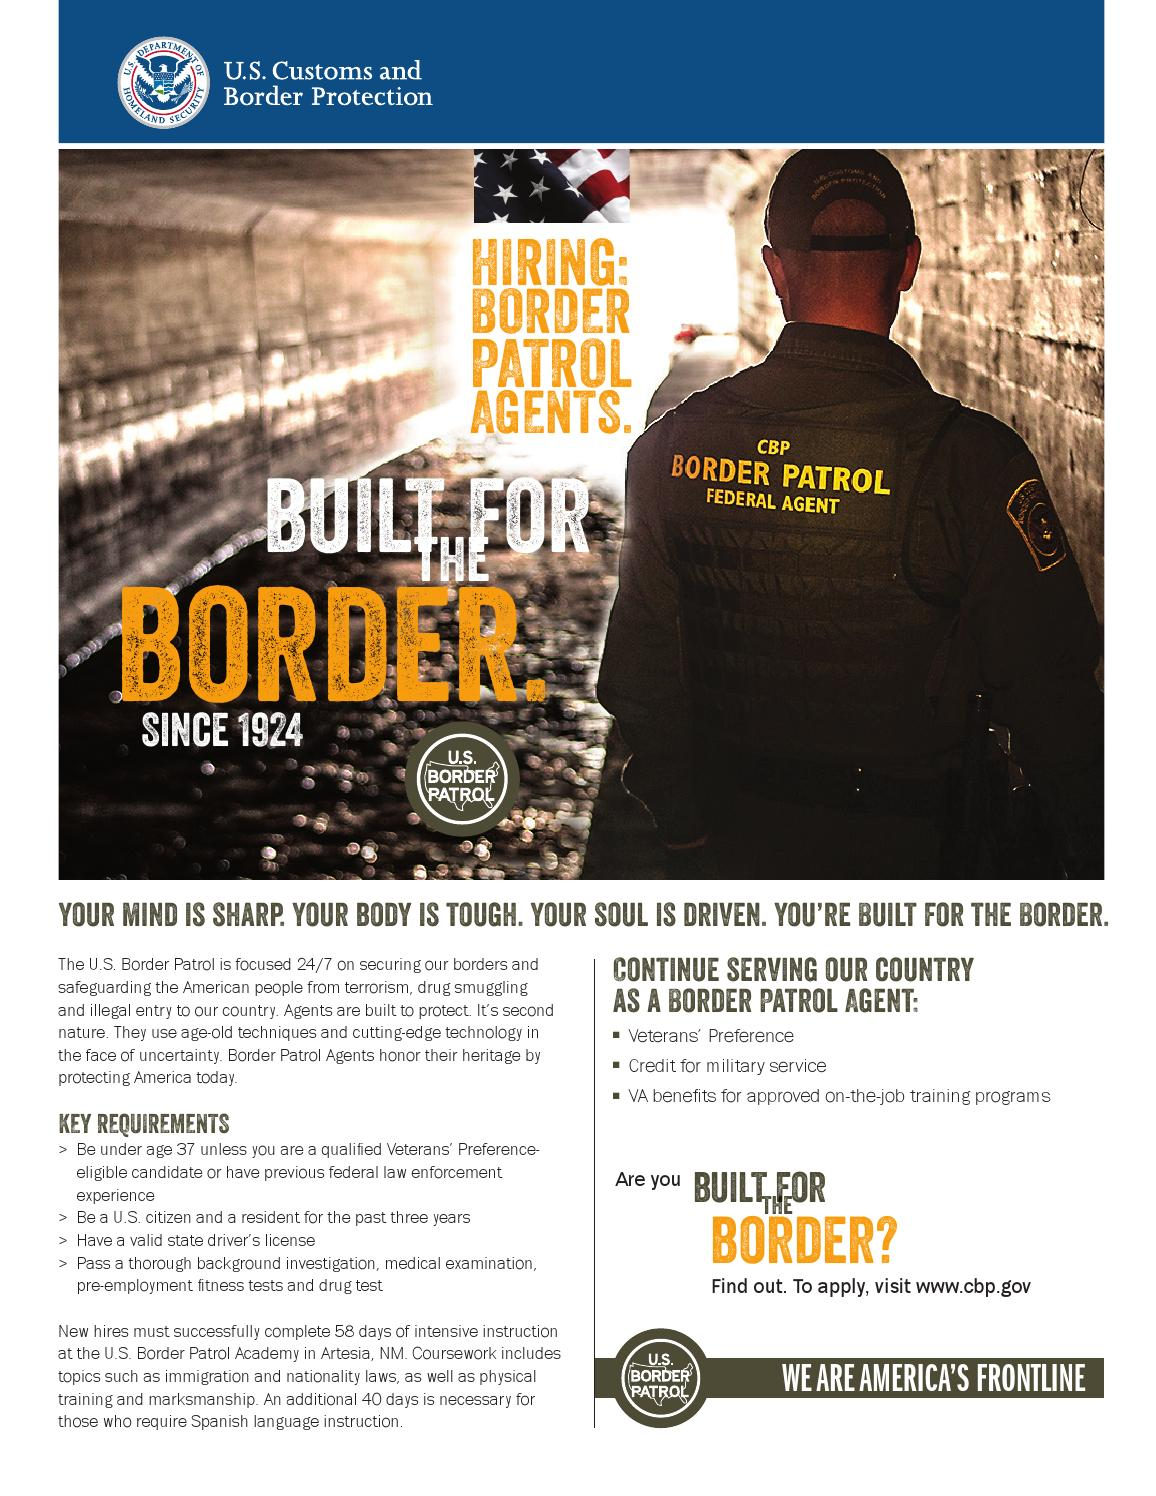 Border patrol flyer vets pp01 by CT Guard RSP - issuu